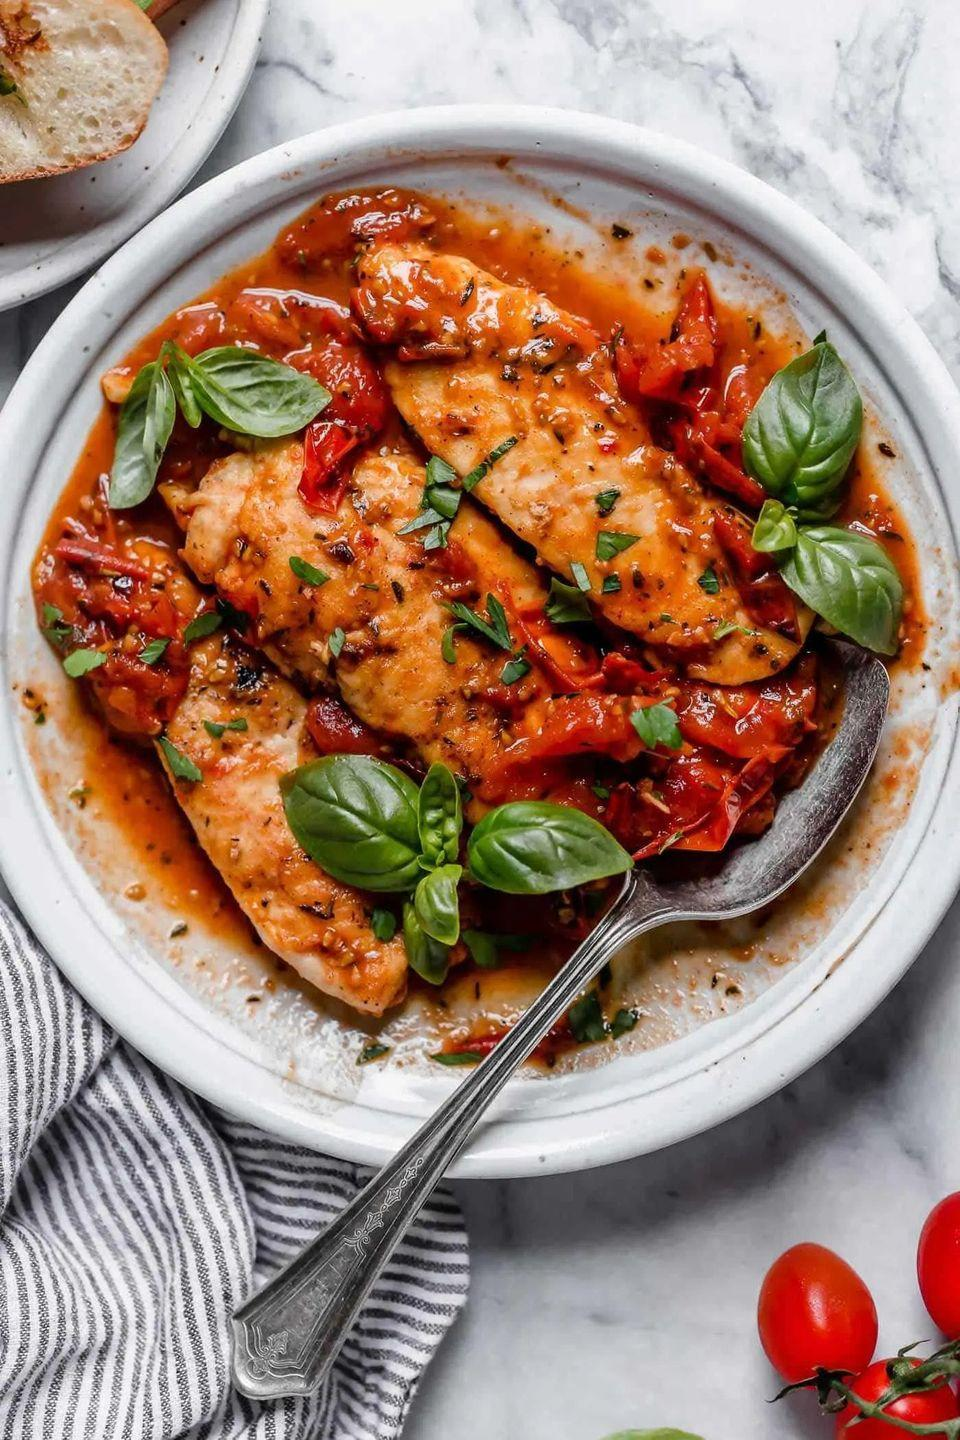 """<p>The key to this pan sauce is making an herb butter with garlic, Italian seasoning, and paprika. It melts into the charred, juicy tomatoes for an incredibly flavorful sauce. </p><p><strong>Get the recipe at <a href=""""https://www.tablefortwoblog.com/chicken-with-tomato-herb-pan-sauce/"""" rel=""""nofollow noopener"""" target=""""_blank"""" data-ylk=""""slk:Table for Two Blog"""" class=""""link rapid-noclick-resp"""">Table for Two Blog</a>. </strong></p><p><a class=""""link rapid-noclick-resp"""" href=""""https://go.redirectingat.com?id=74968X1596630&url=https%3A%2F%2Fwww.walmart.com%2Fsearch%2F%3Fquery%3Dmixing%2Bspoons&sref=https%3A%2F%2Fwww.thepioneerwoman.com%2Ffood-cooking%2Fmeals-menus%2Fg36500577%2Ftomato-recipes%2F"""" rel=""""nofollow noopener"""" target=""""_blank"""" data-ylk=""""slk:SHOP MIXING SPOONS"""">SHOP MIXING SPOONS</a></p>"""